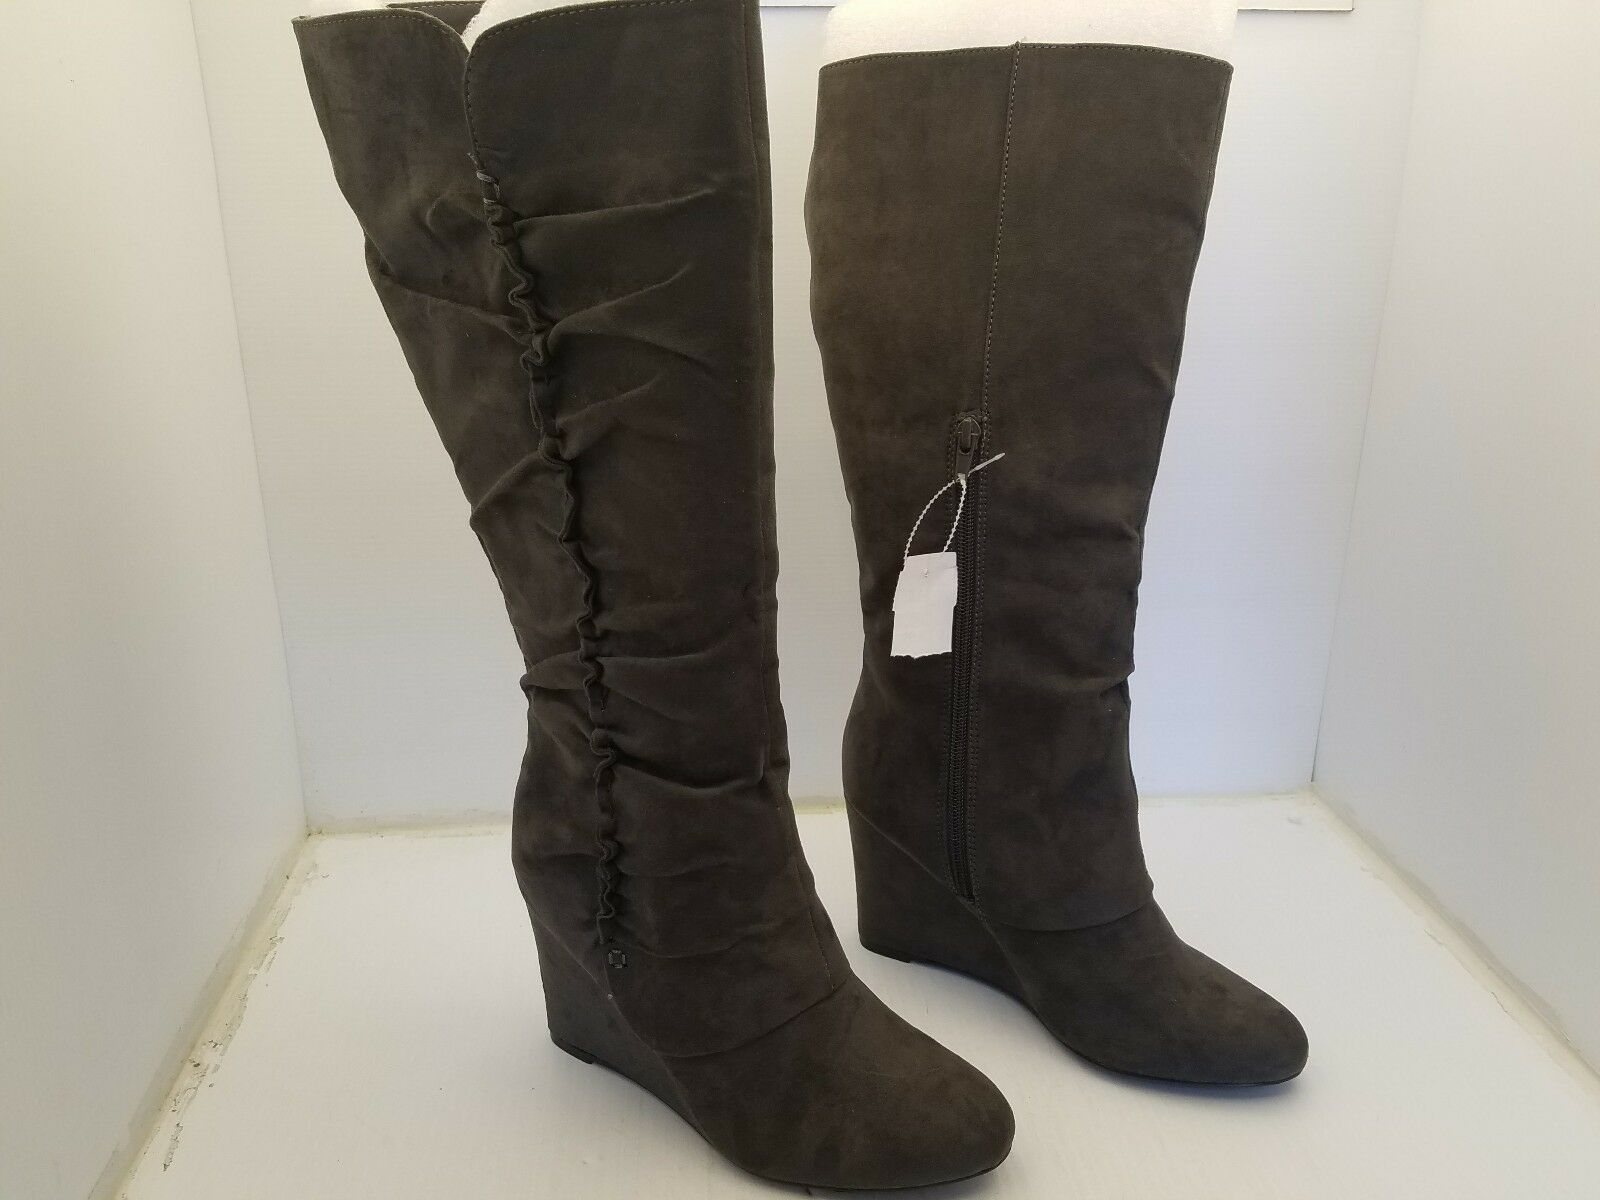 MIA AMORE ADYSON TAUPE WEDGE HEEL TALL MID CALF BOOTS WOMEN'S SIZE 7.5M